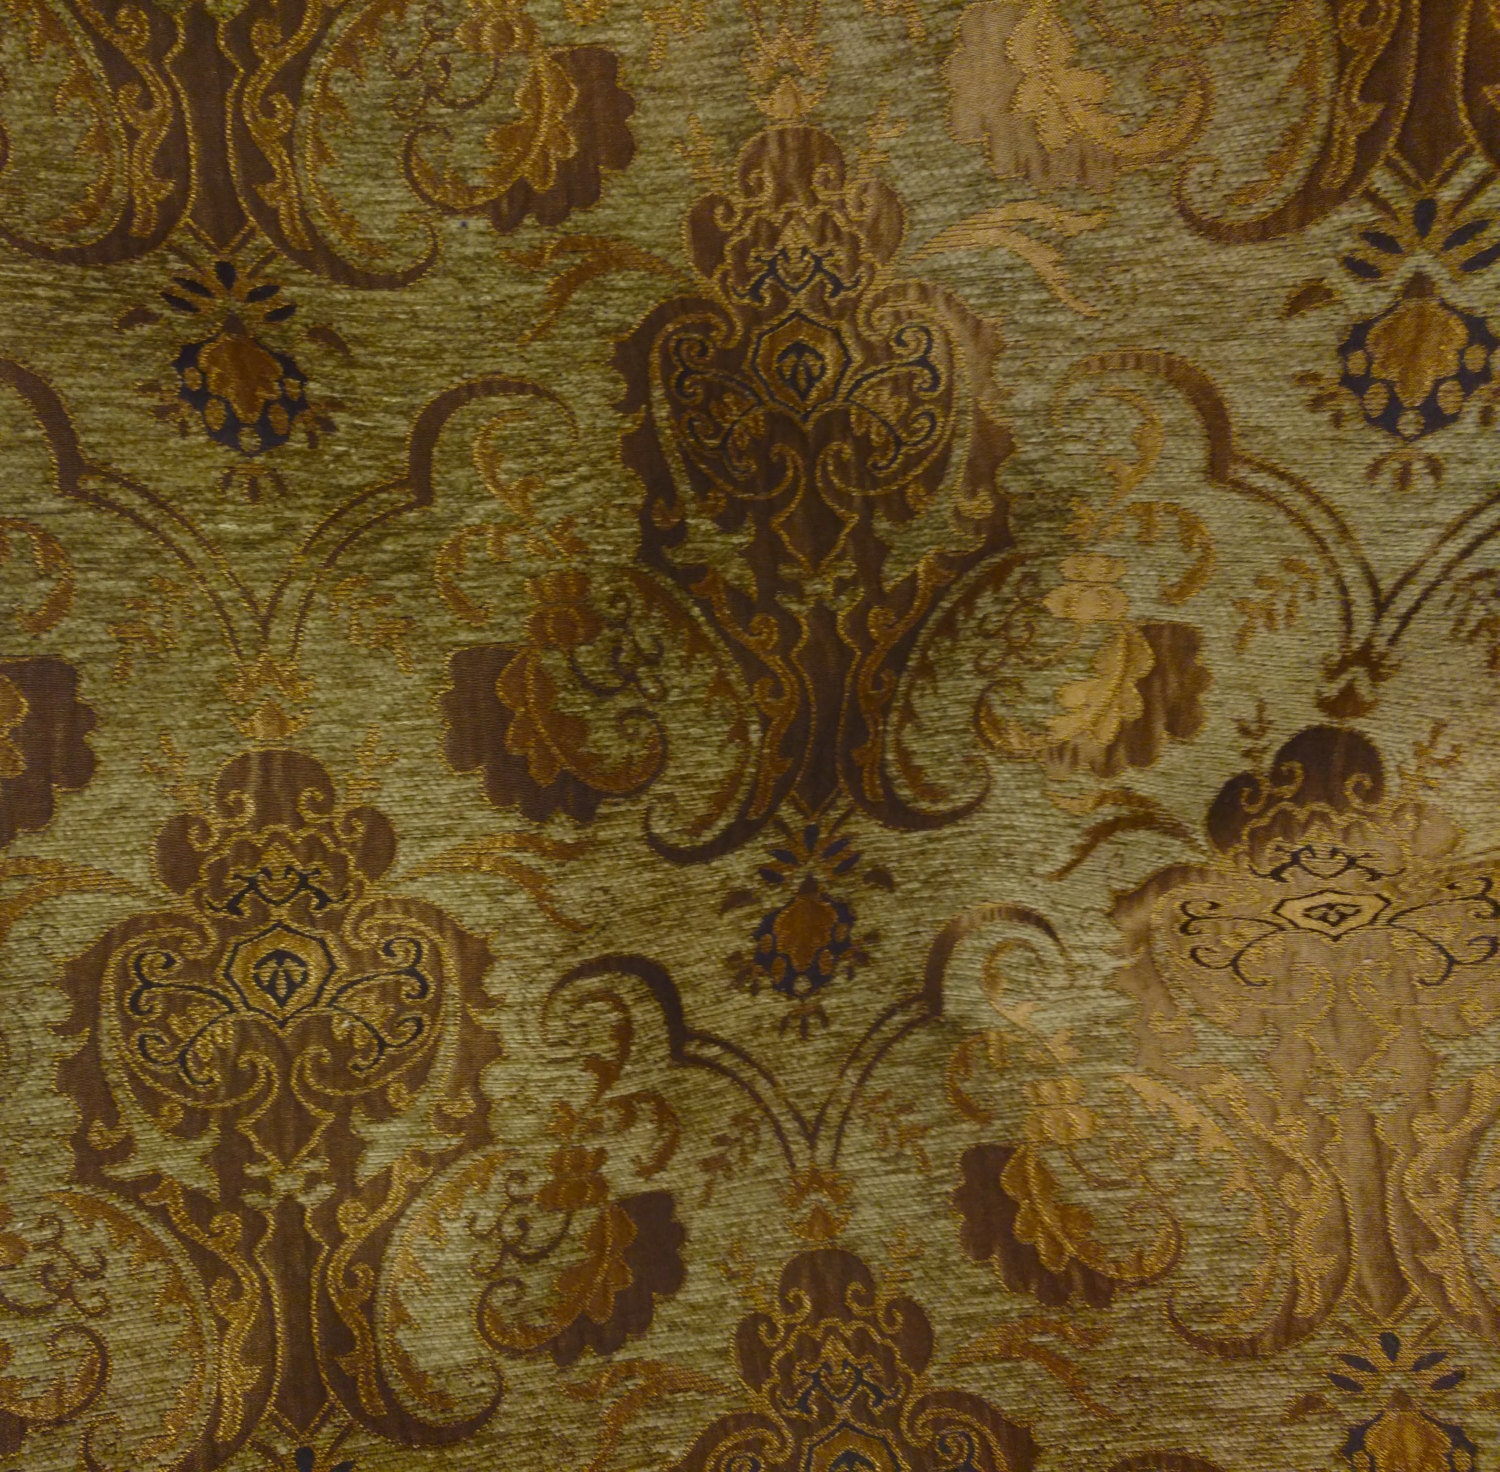 Chenille Damask Fabric, Renaissance Home Decor Upholstery,color ...